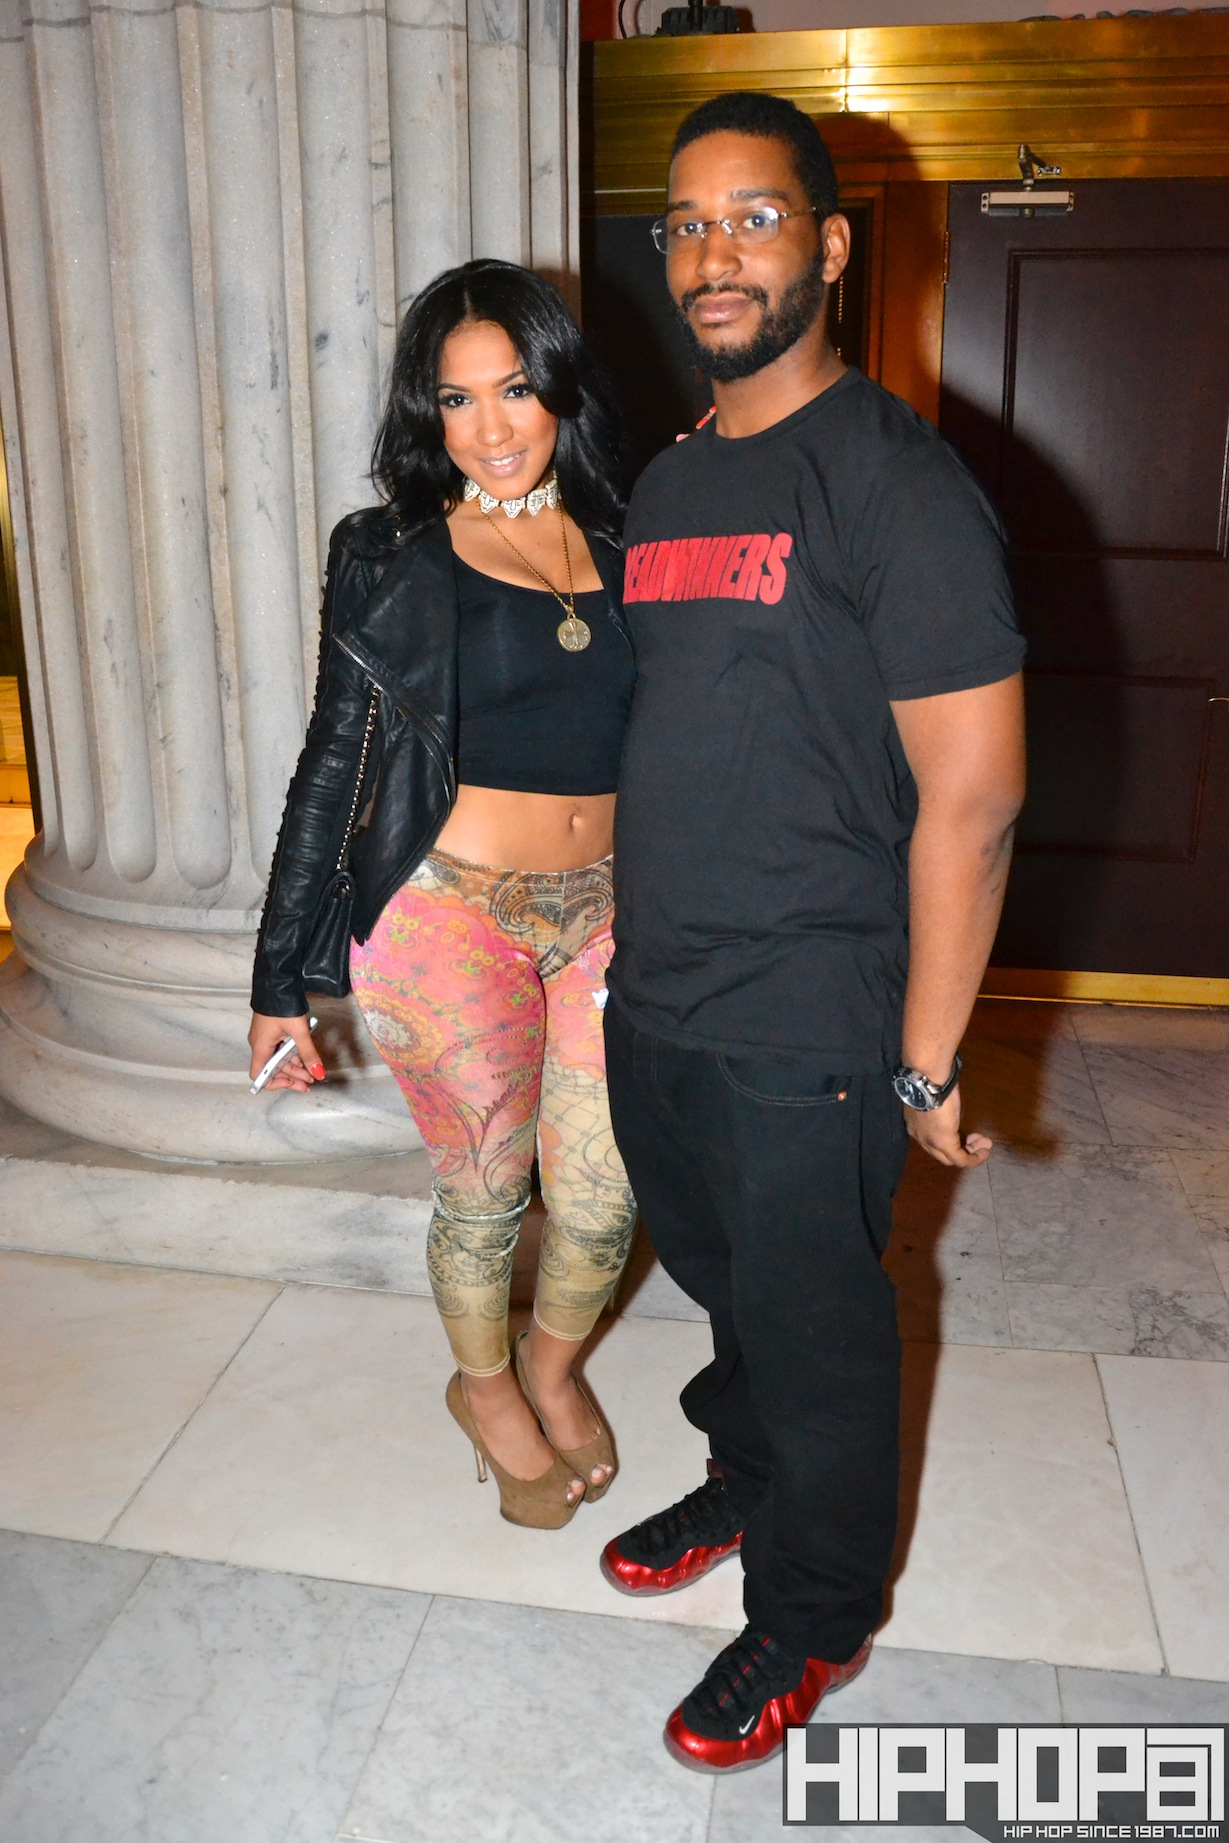 Yaris-Sanchez-3-18-12-1 Yaris Sanchez (@Yaris_Sanchez) Visits Club Onyx In Philly (3/18/12) Photos